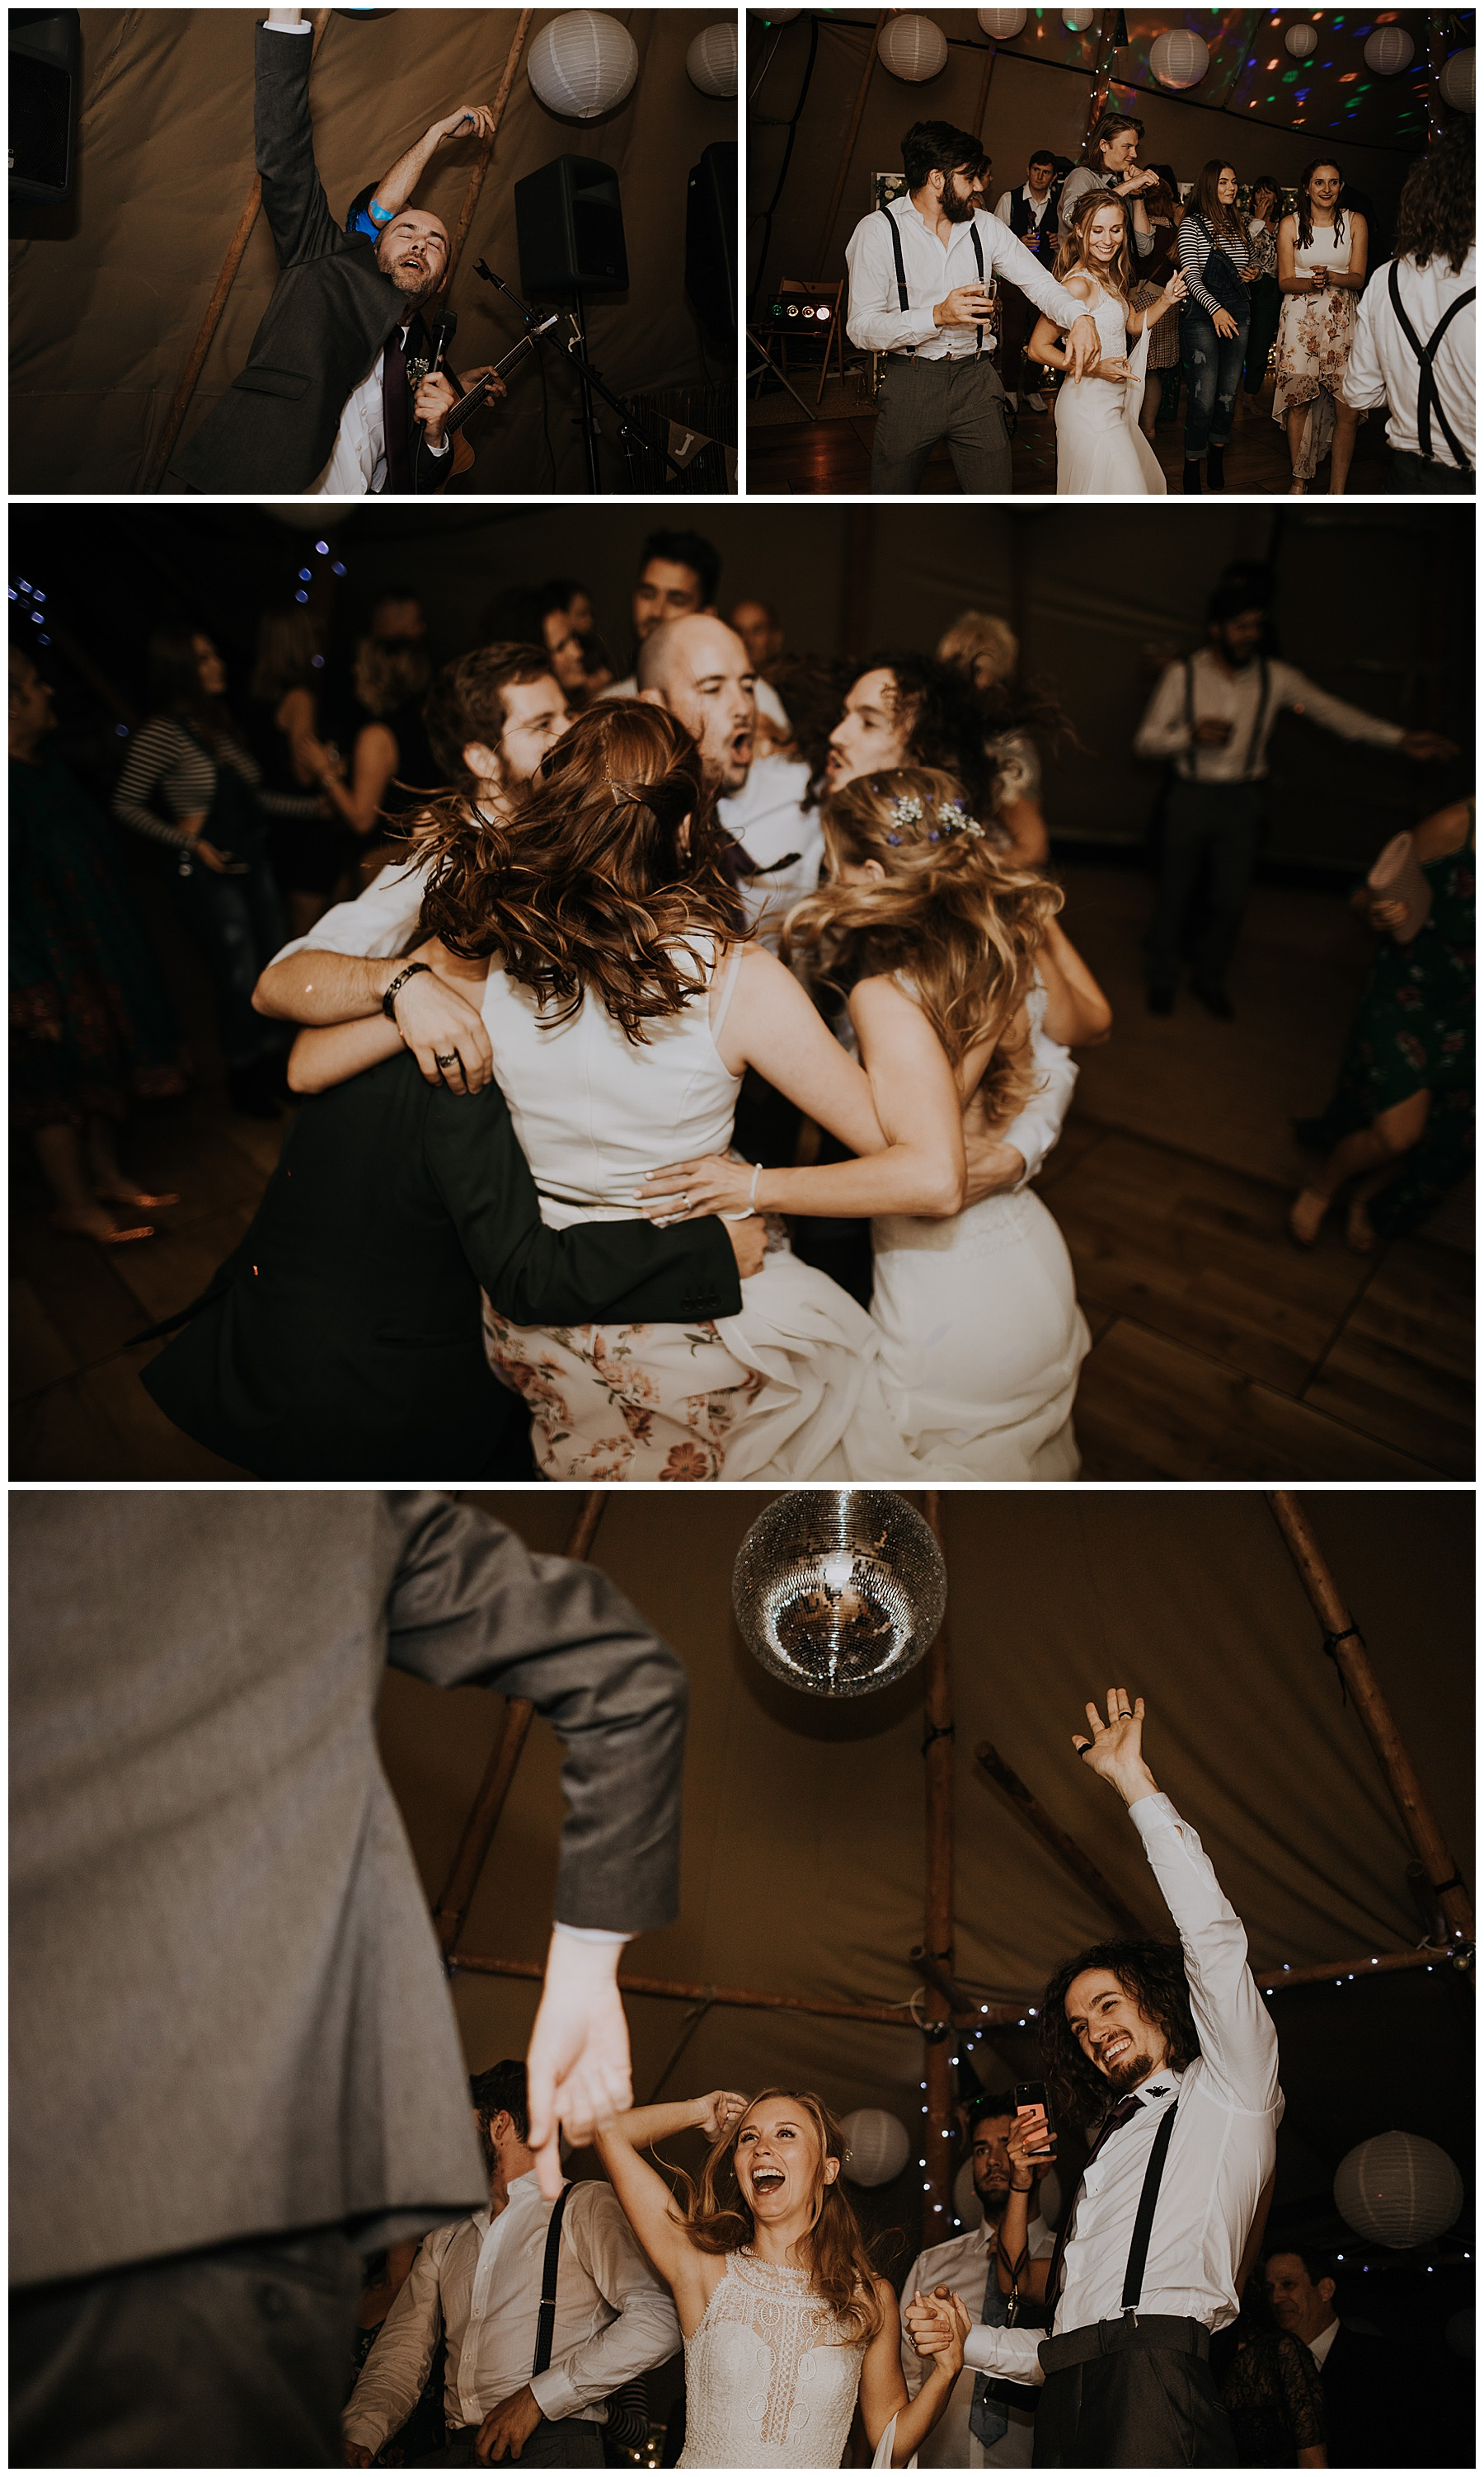 friends dance together in a circle